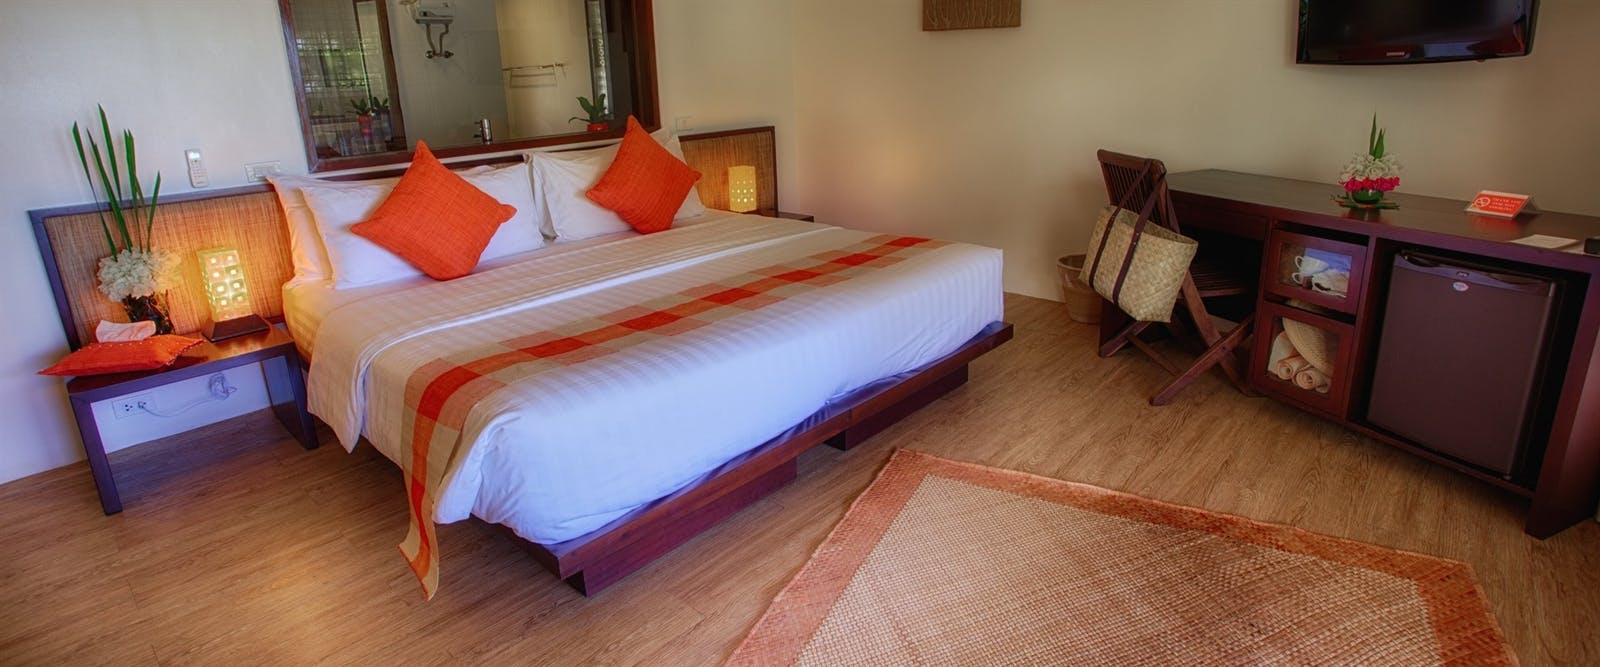 Bedroom at Amun Ini Beach Resort & Spa, Philippines